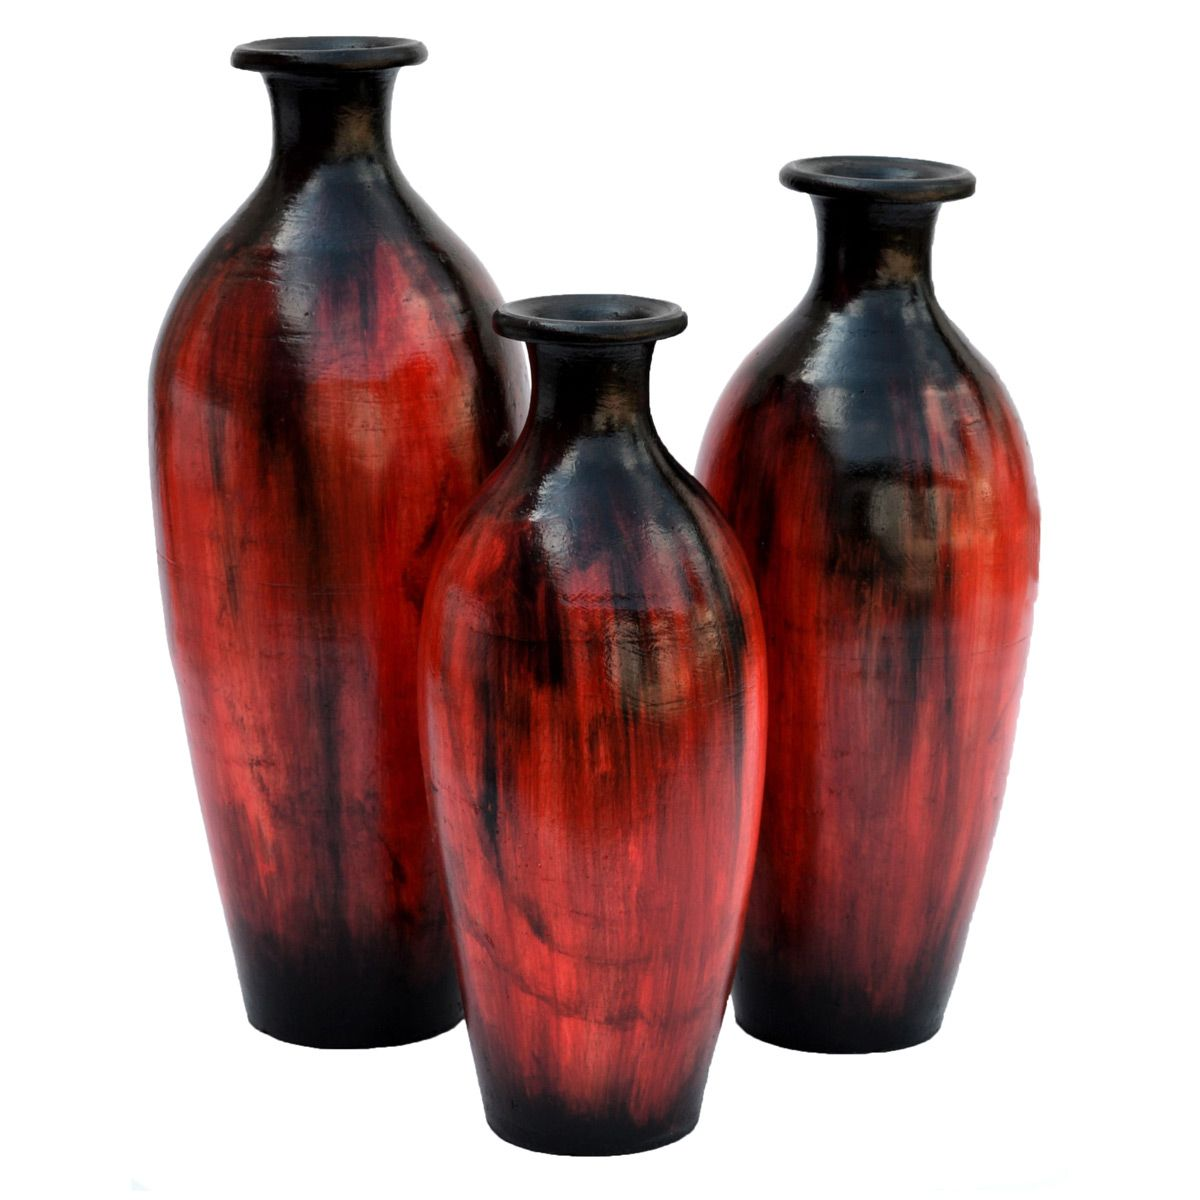 Almaden Vases - Set of 3